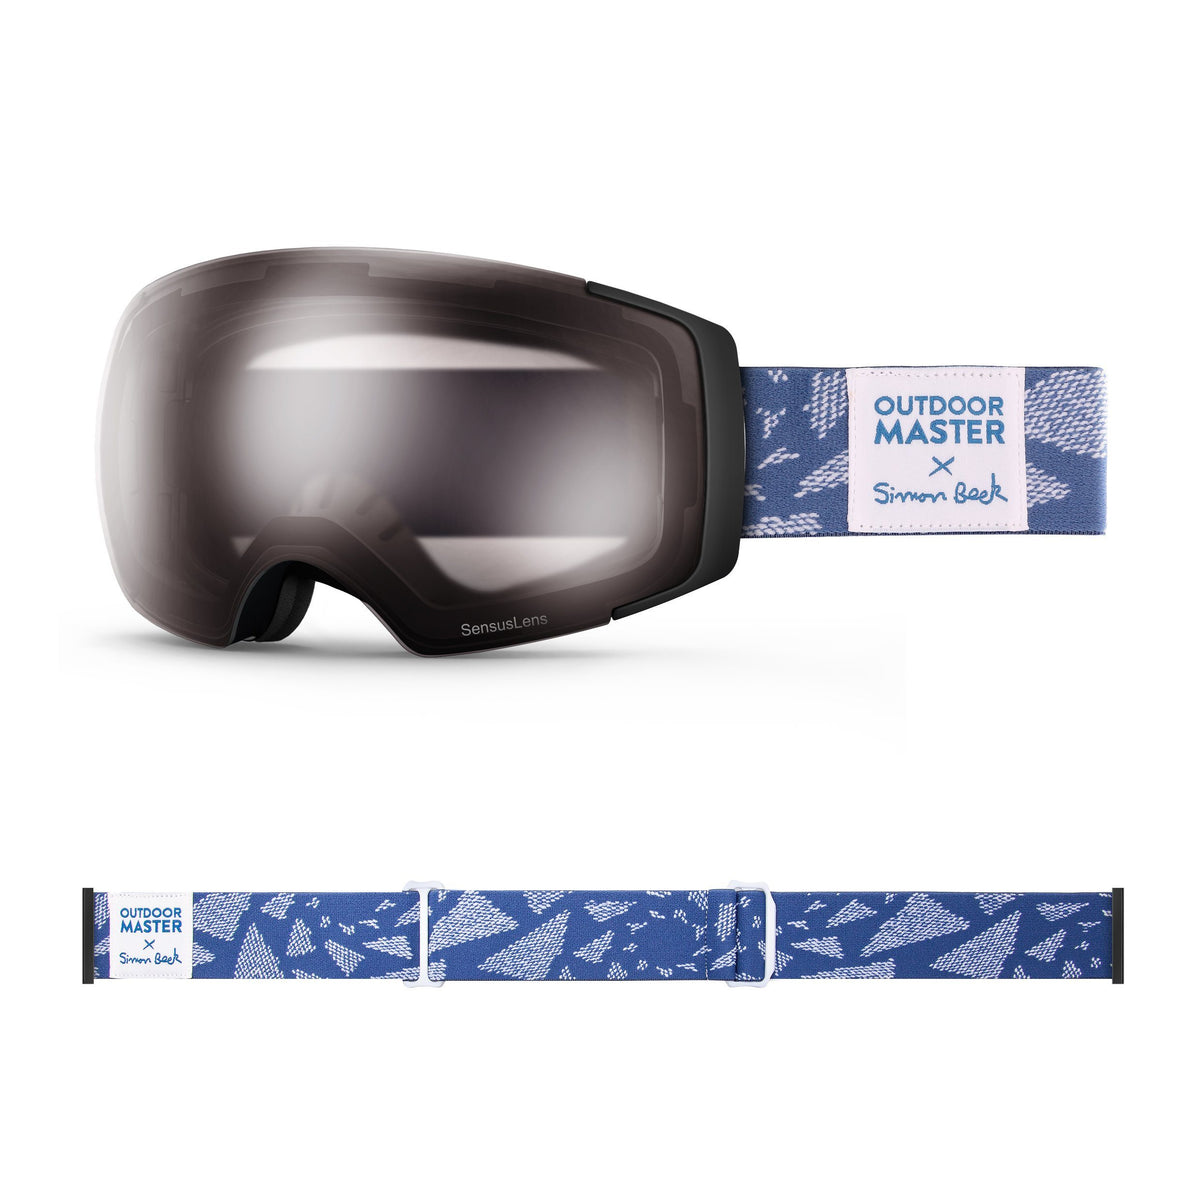 OutdoorMaster x Simon Beck Ski Goggles Pro Series - Snowshoeing Art Limited Edition OutdoorMaster SensusLens VLT40-80% Photochromatic Clear to Pink Flying Triangles